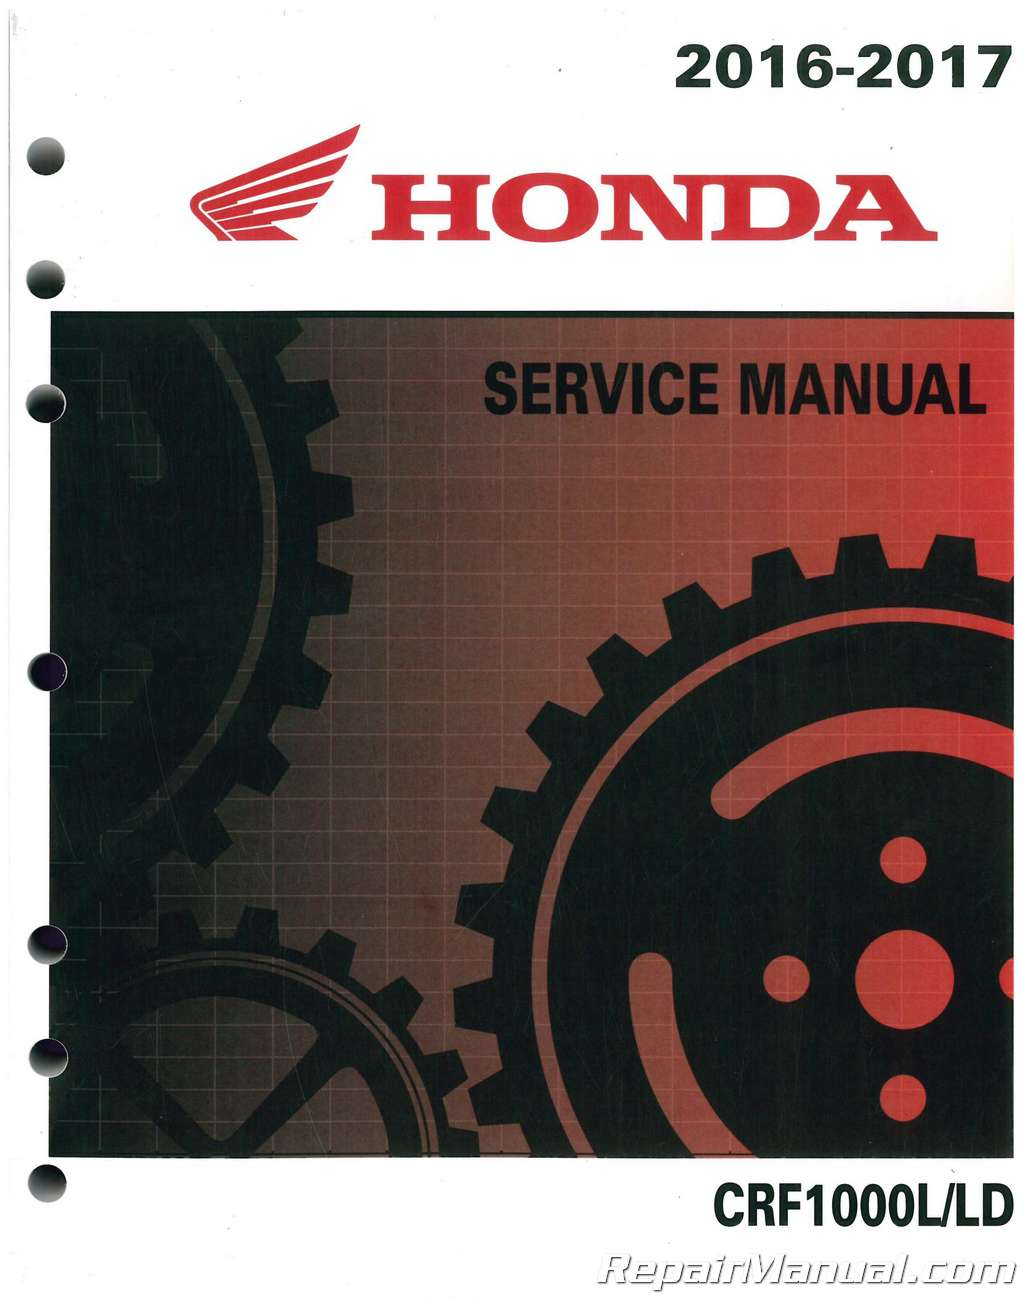 Eaton industrial hydraulics manual